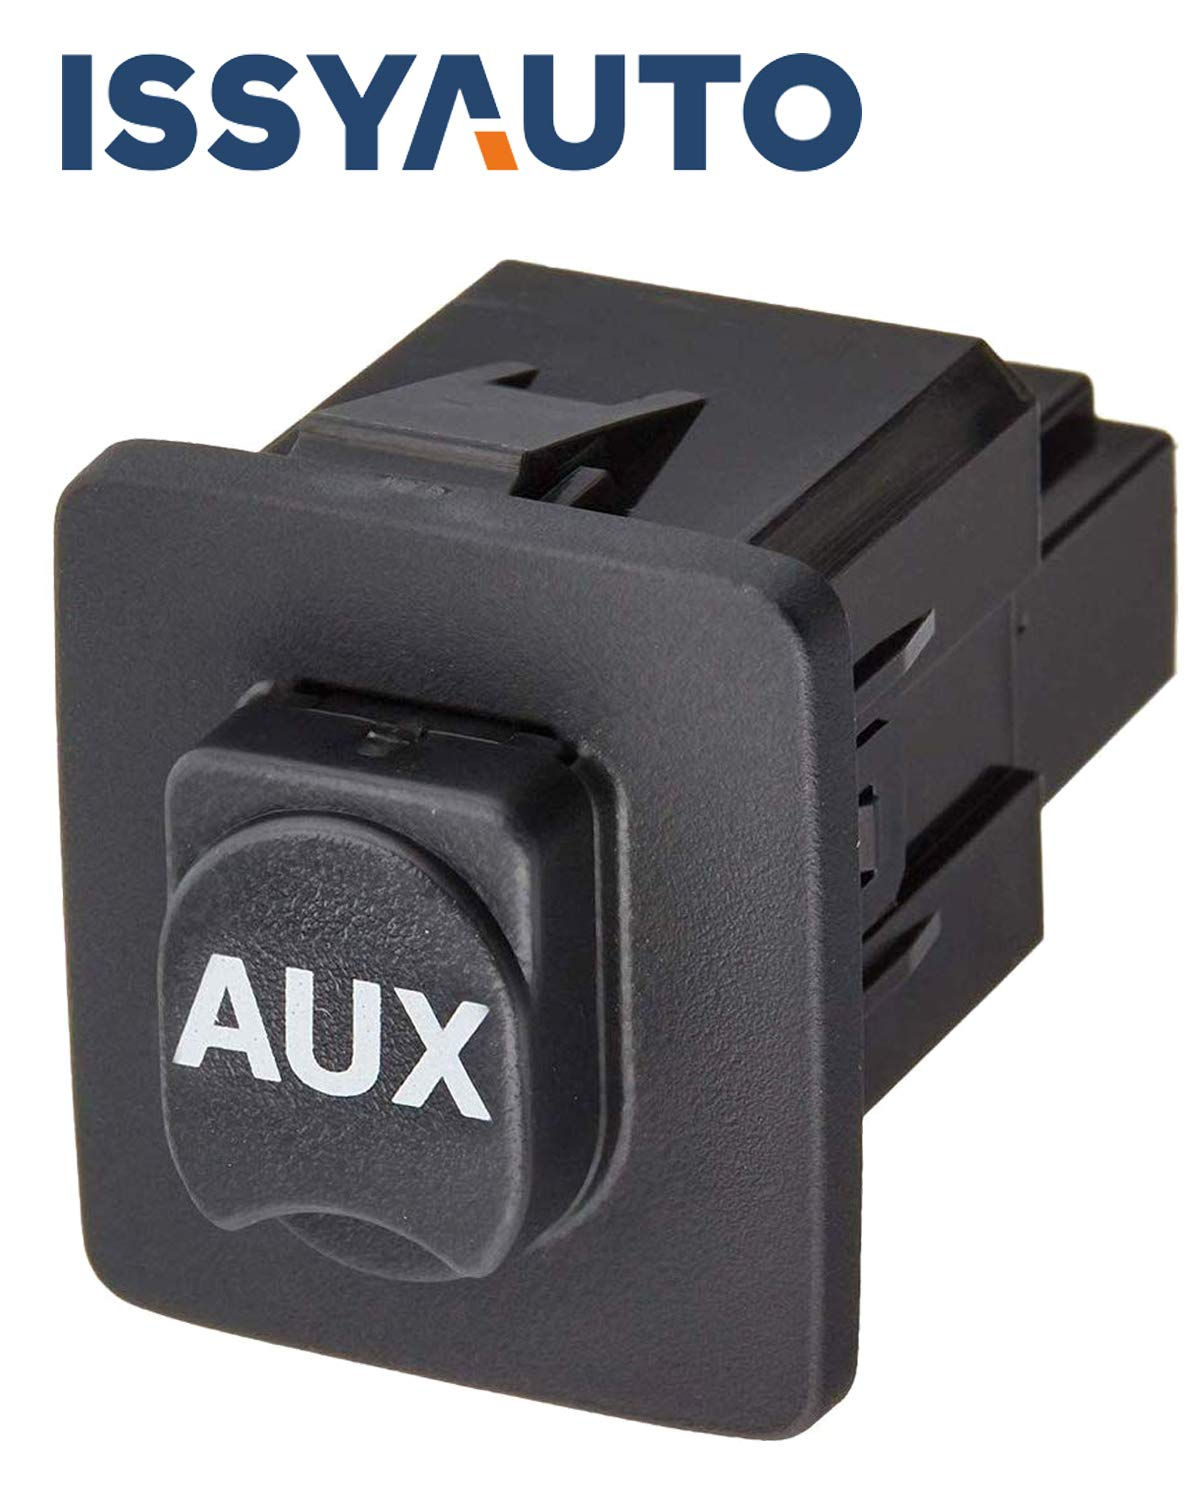 Pilot Auxiliary Input Jack Accord Aux Port Replacement 39112-TA0-A01 by ISSYAUTO